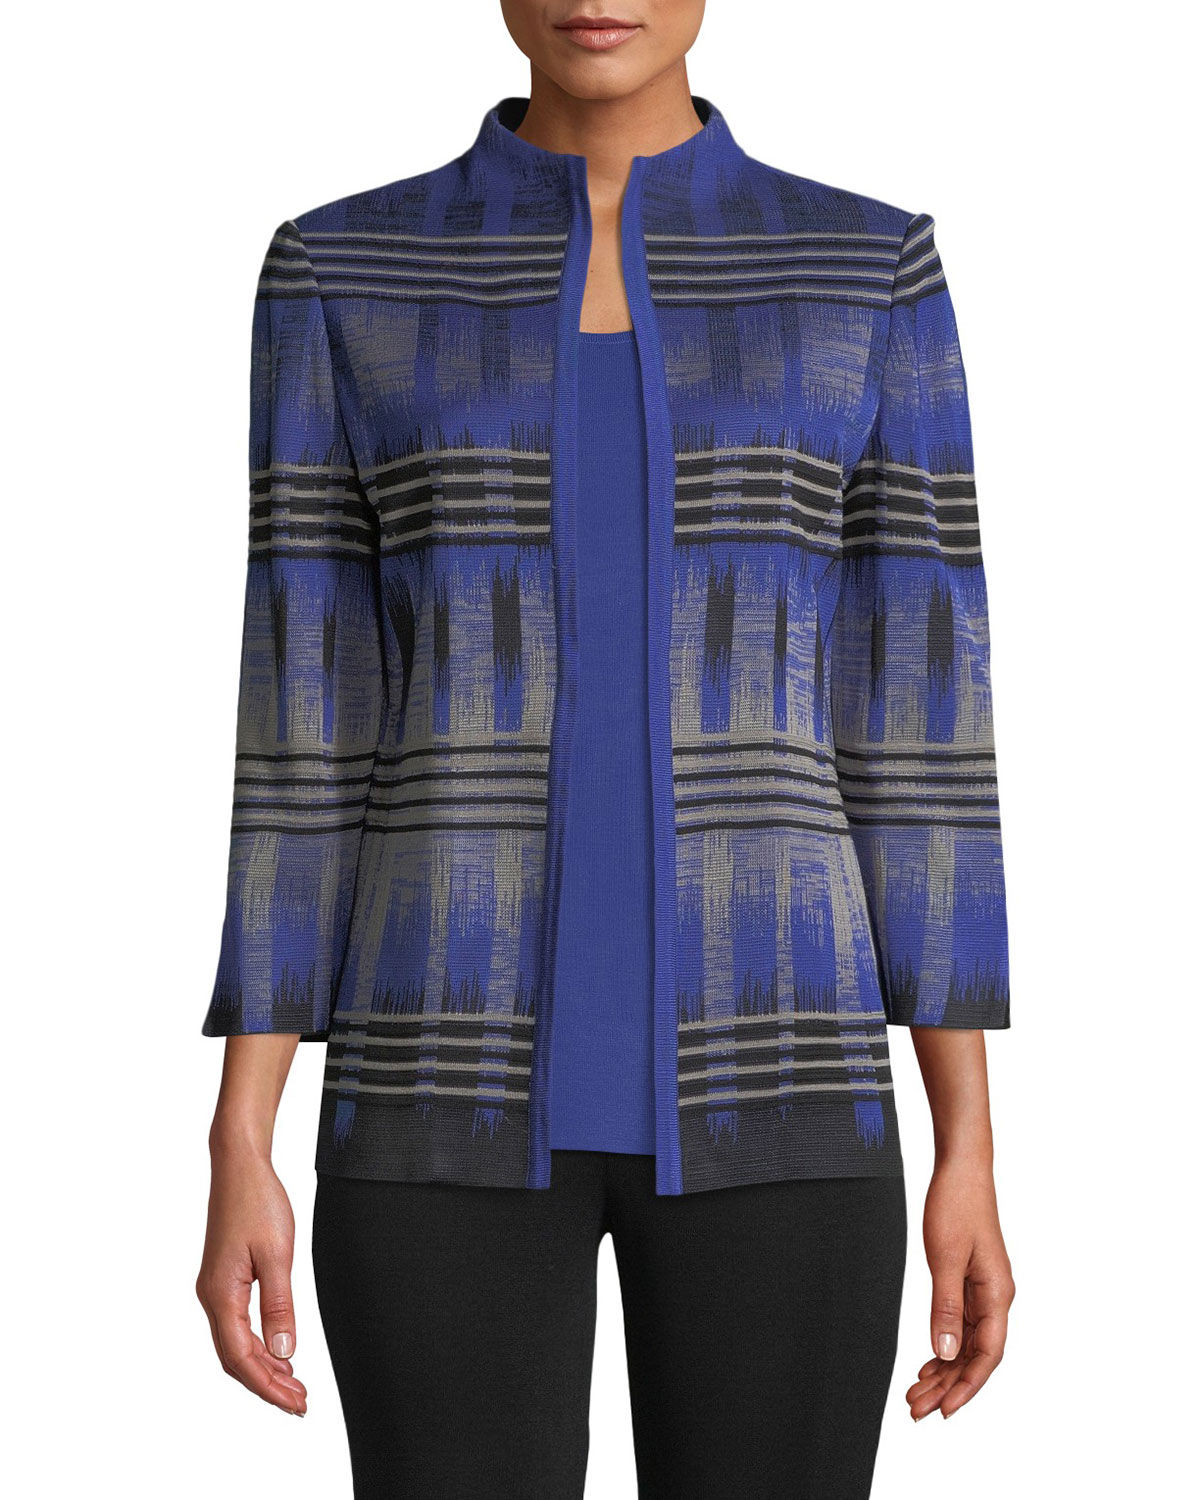 High-Neck Graphic Knit Jacket, Petite